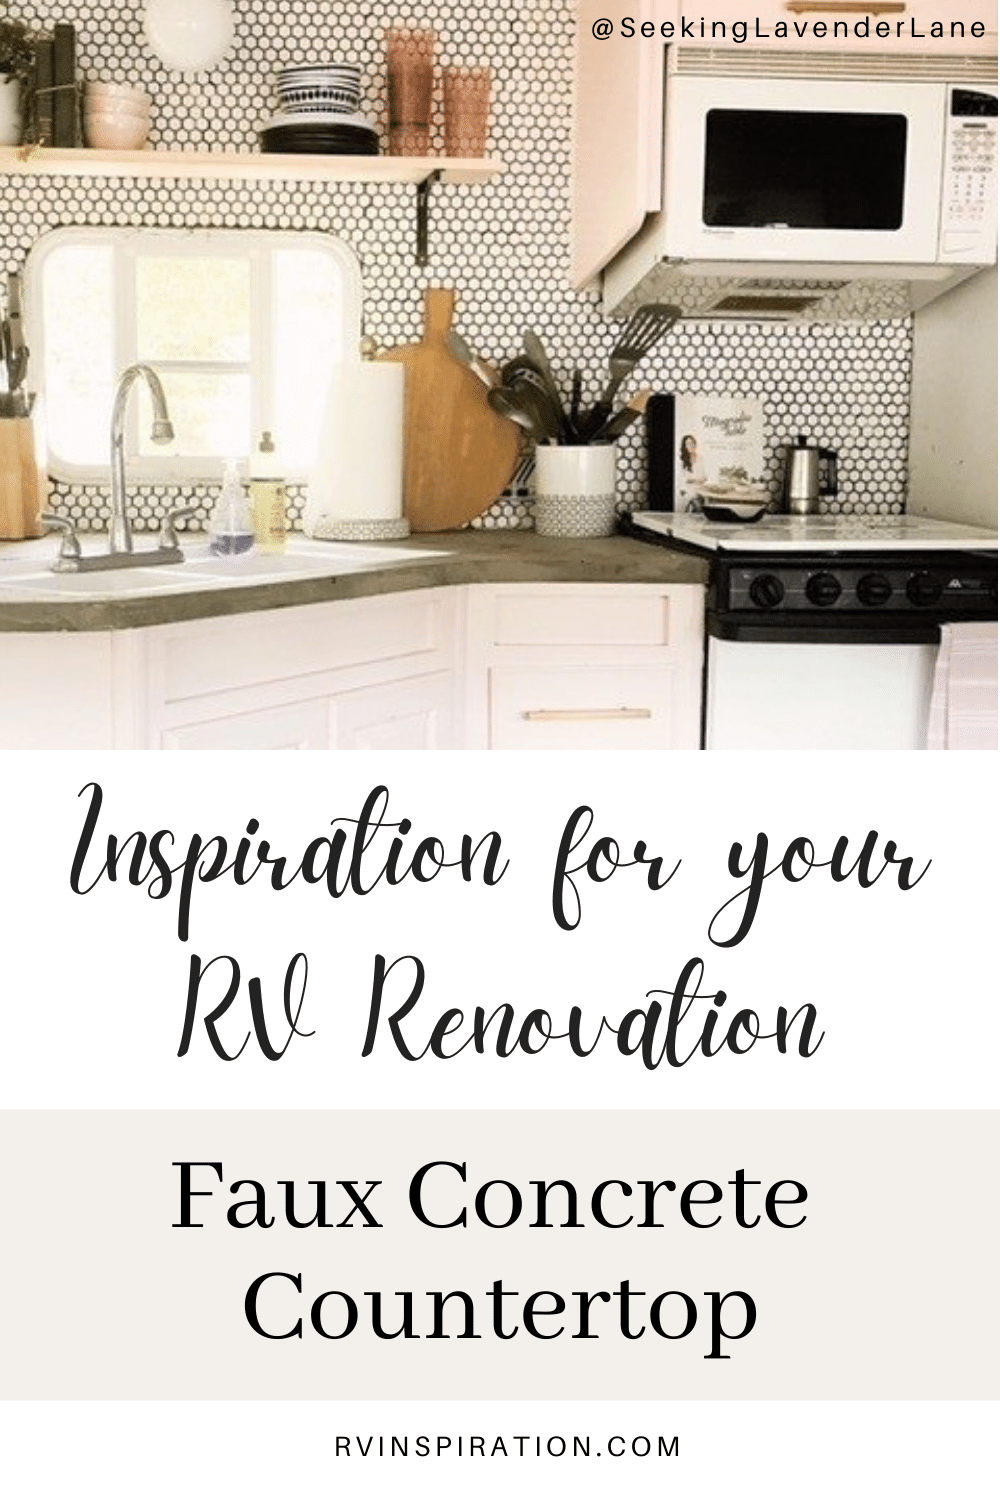 Update your RV kitchen with a beautiful and affordable faux concrete countertop. #RVrenovation #RVkitchen #RVmakeover #RVcountertop